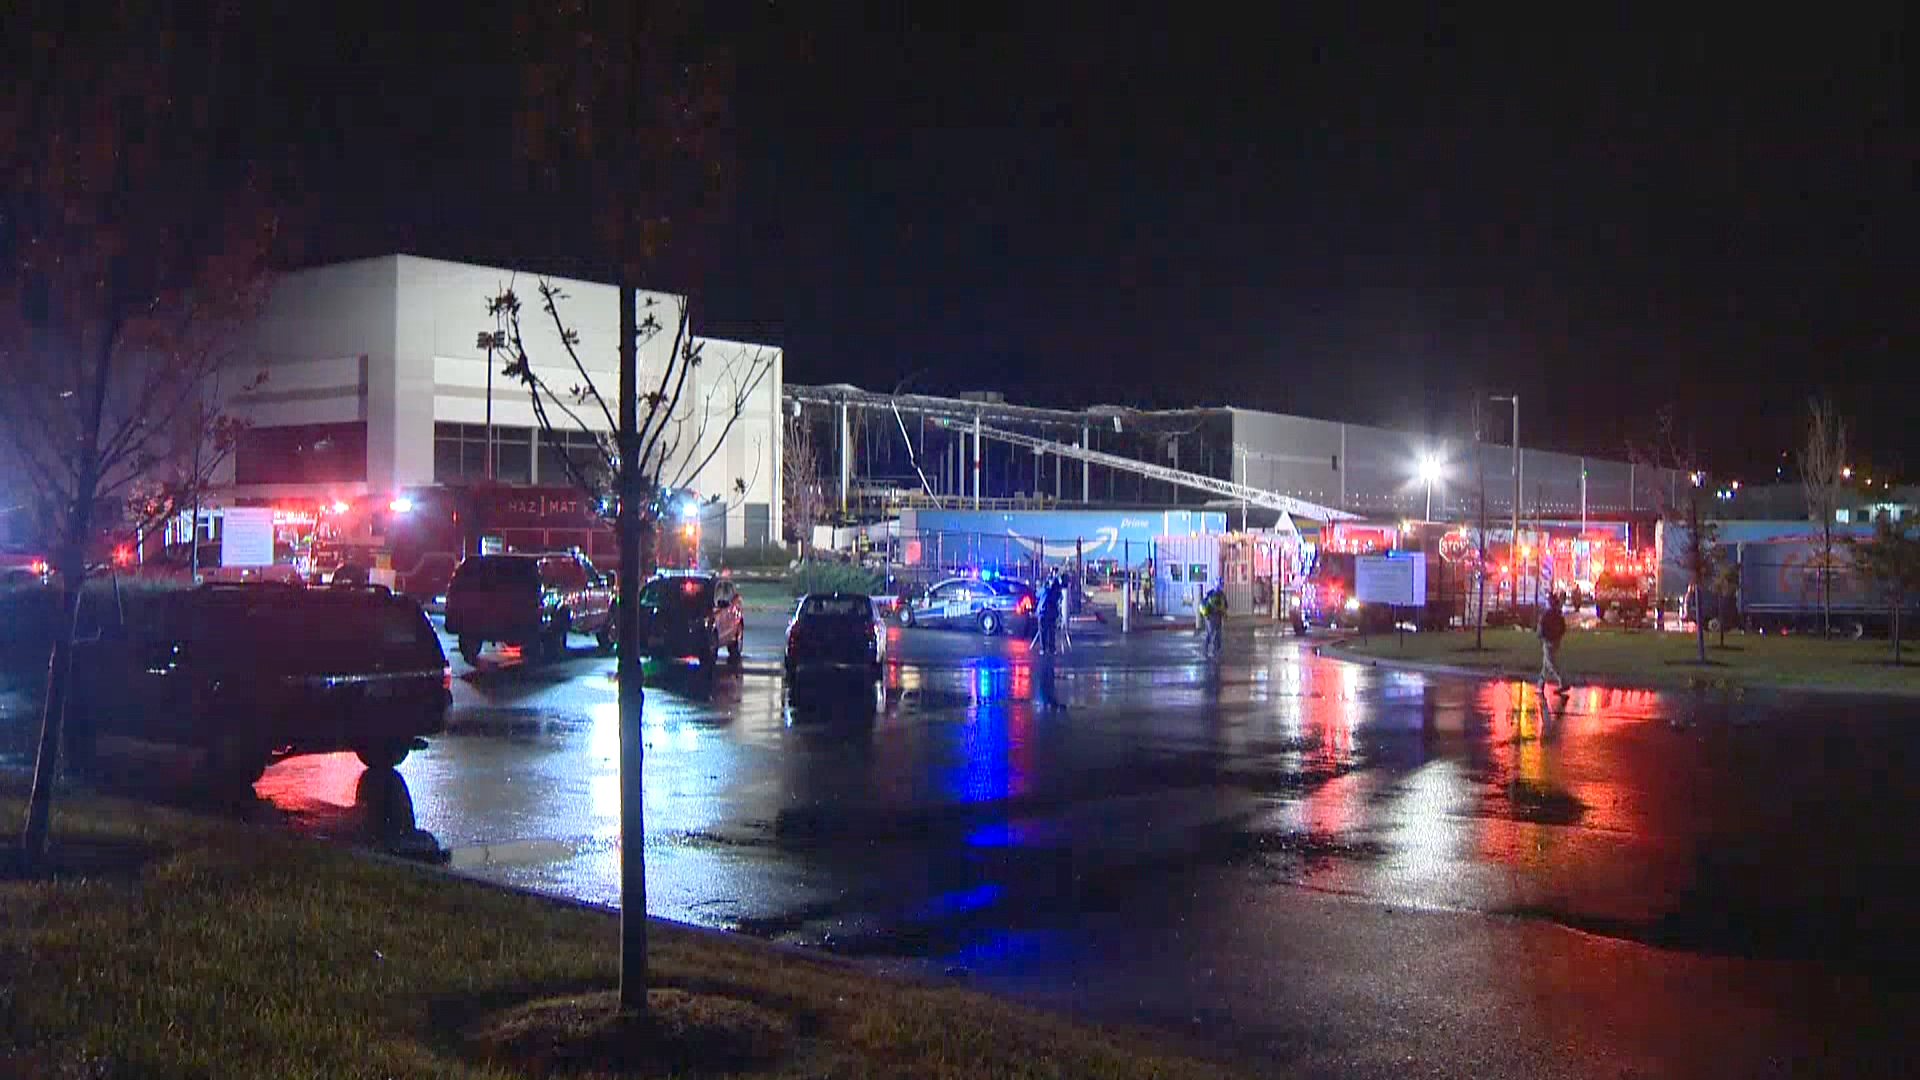 Two dead after wall collapse at Amazon distribution center